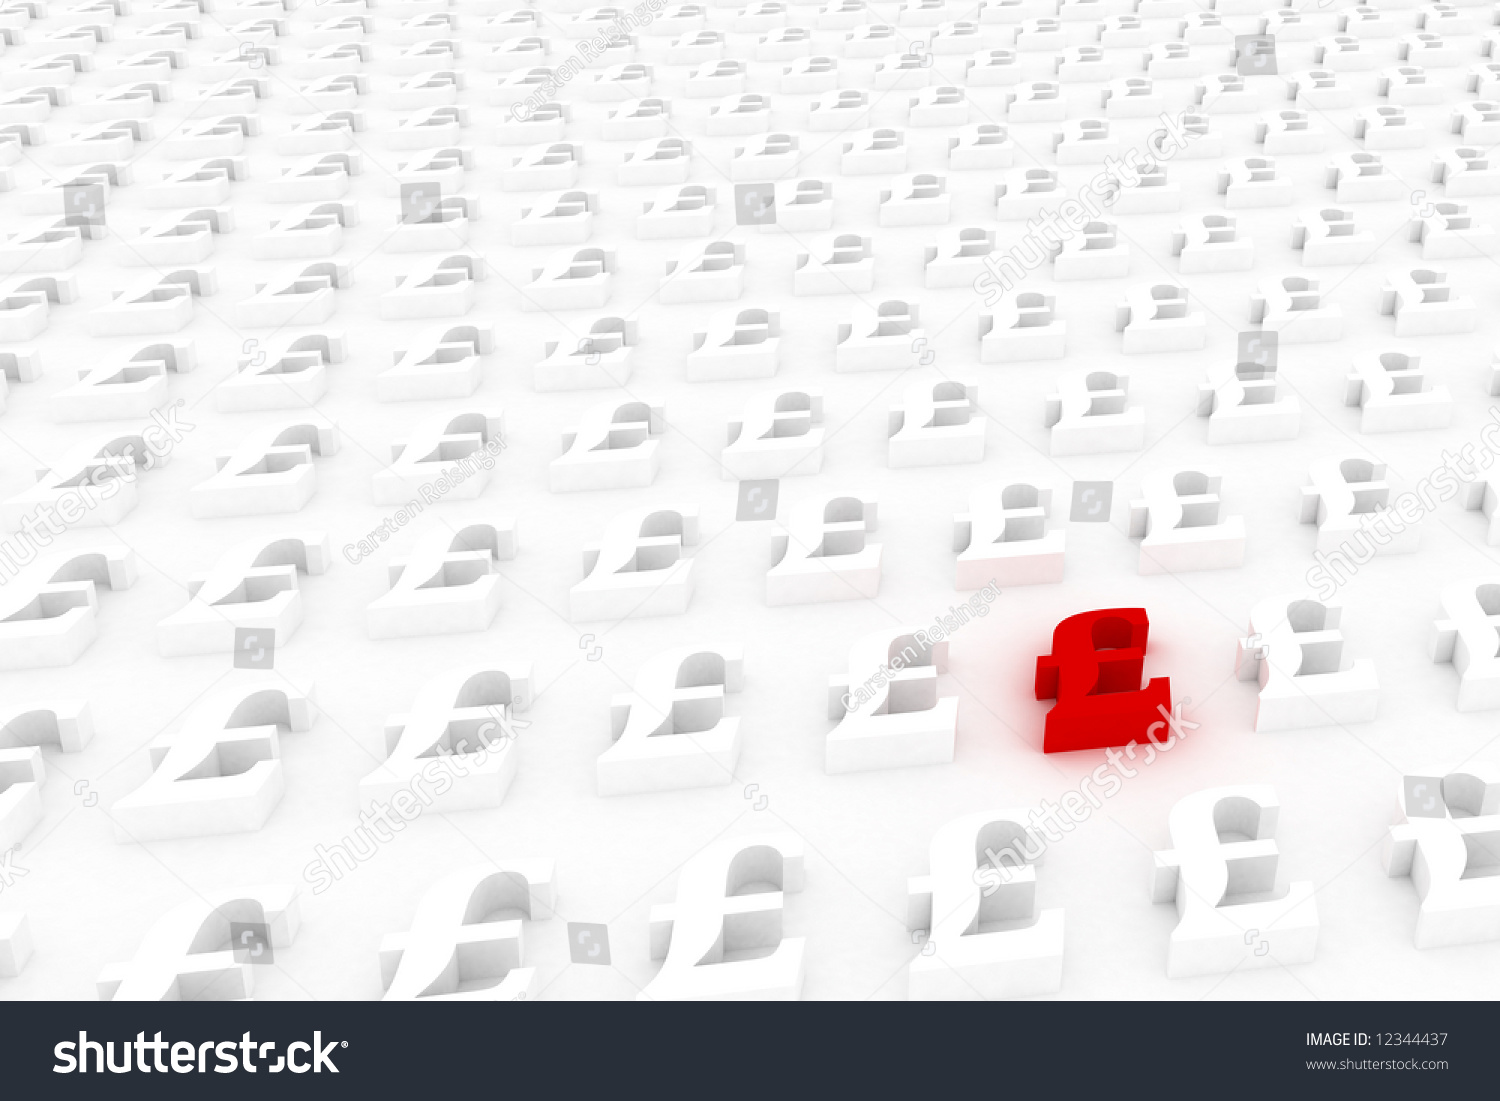 Red different british pound symbol sticking stock illustration red different british pound symbol sticking out of the crowd biocorpaavc Choice Image